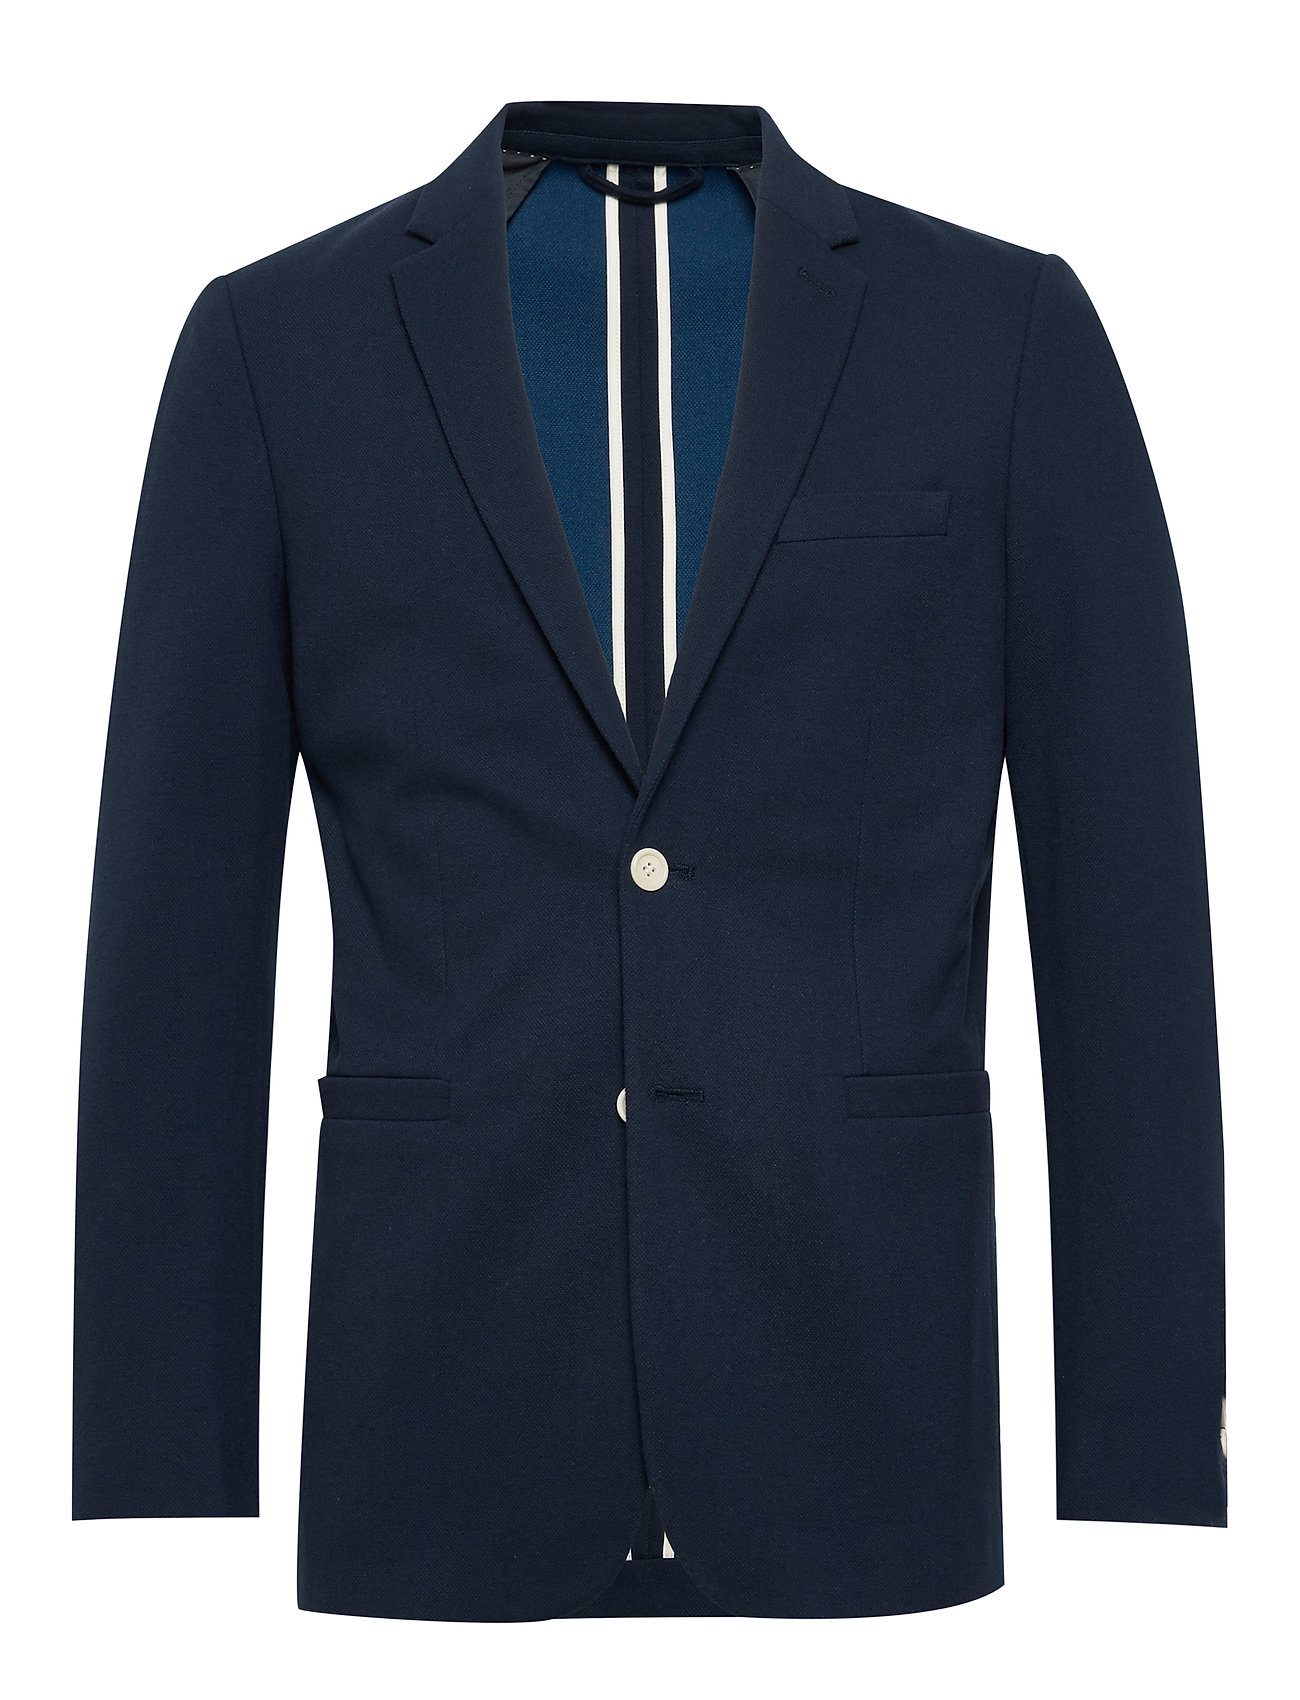 Gant D1. WASHABLE JERSEY PIQUE BLAZER - EVENING BLUE